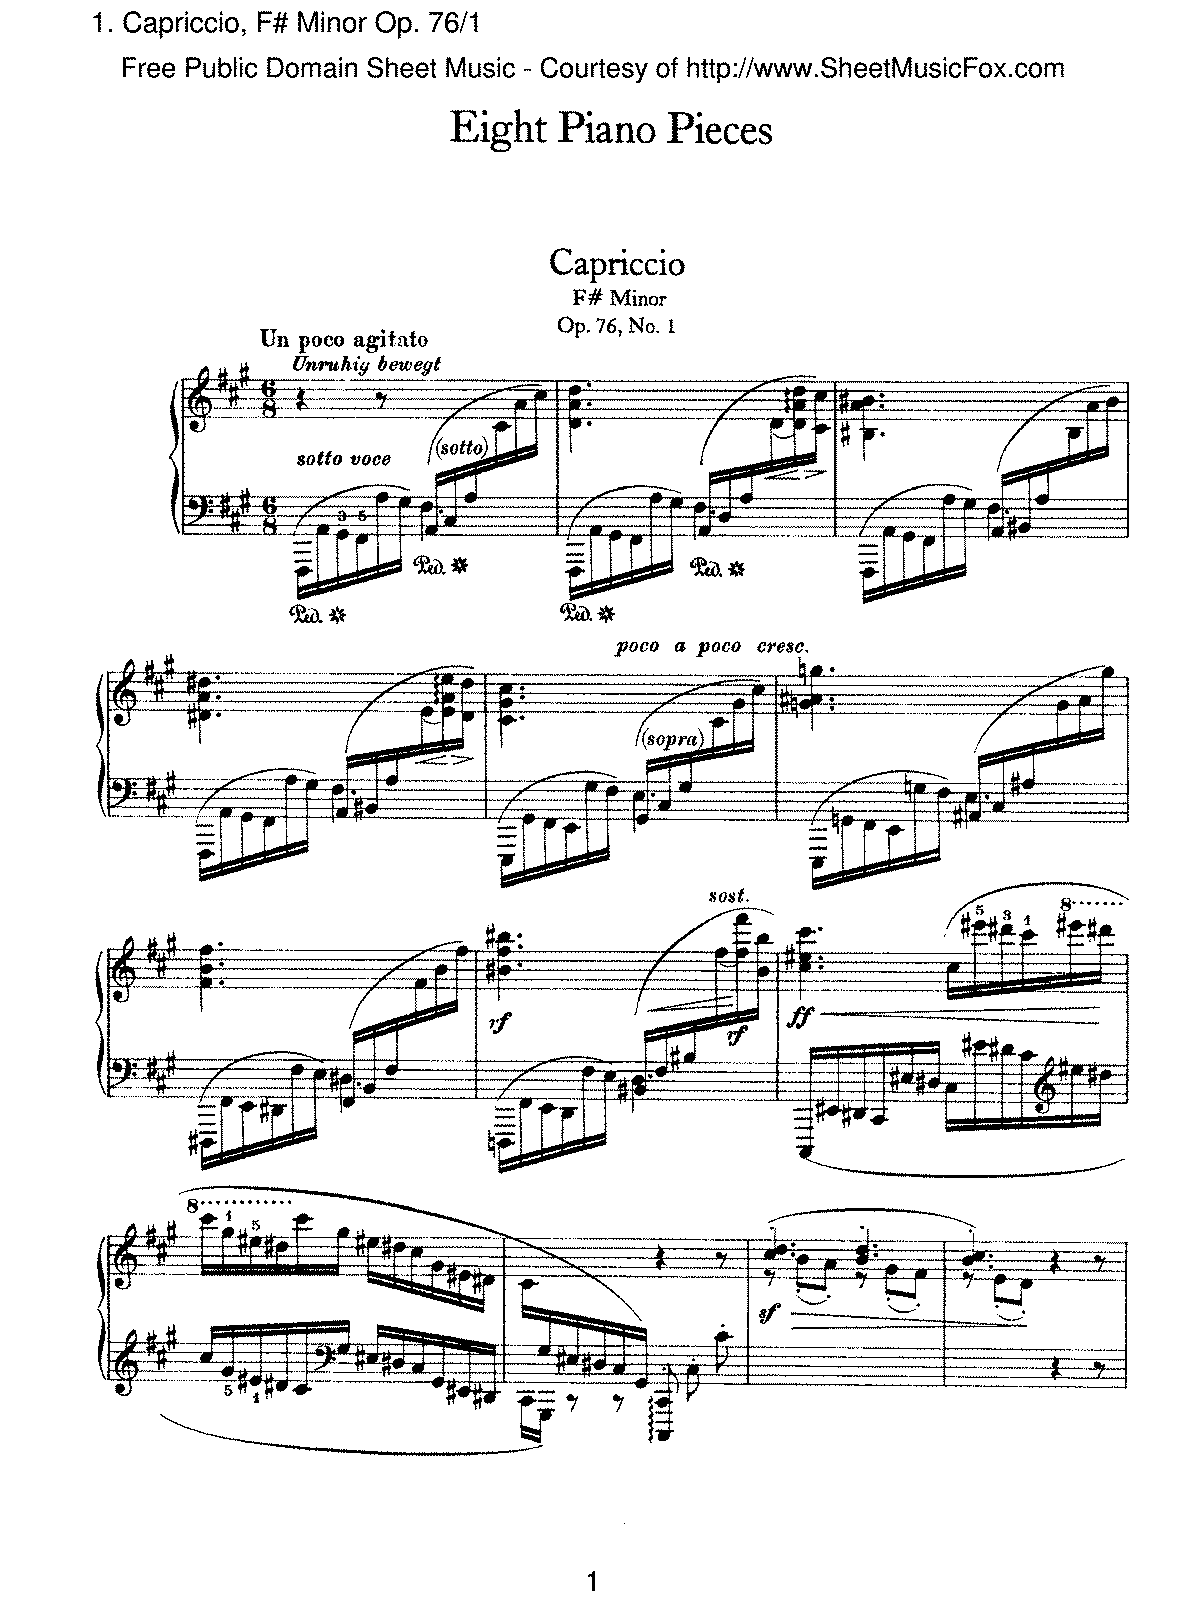 Brahms - Capriccio, F- Minor, Op.76 No.1.pdf